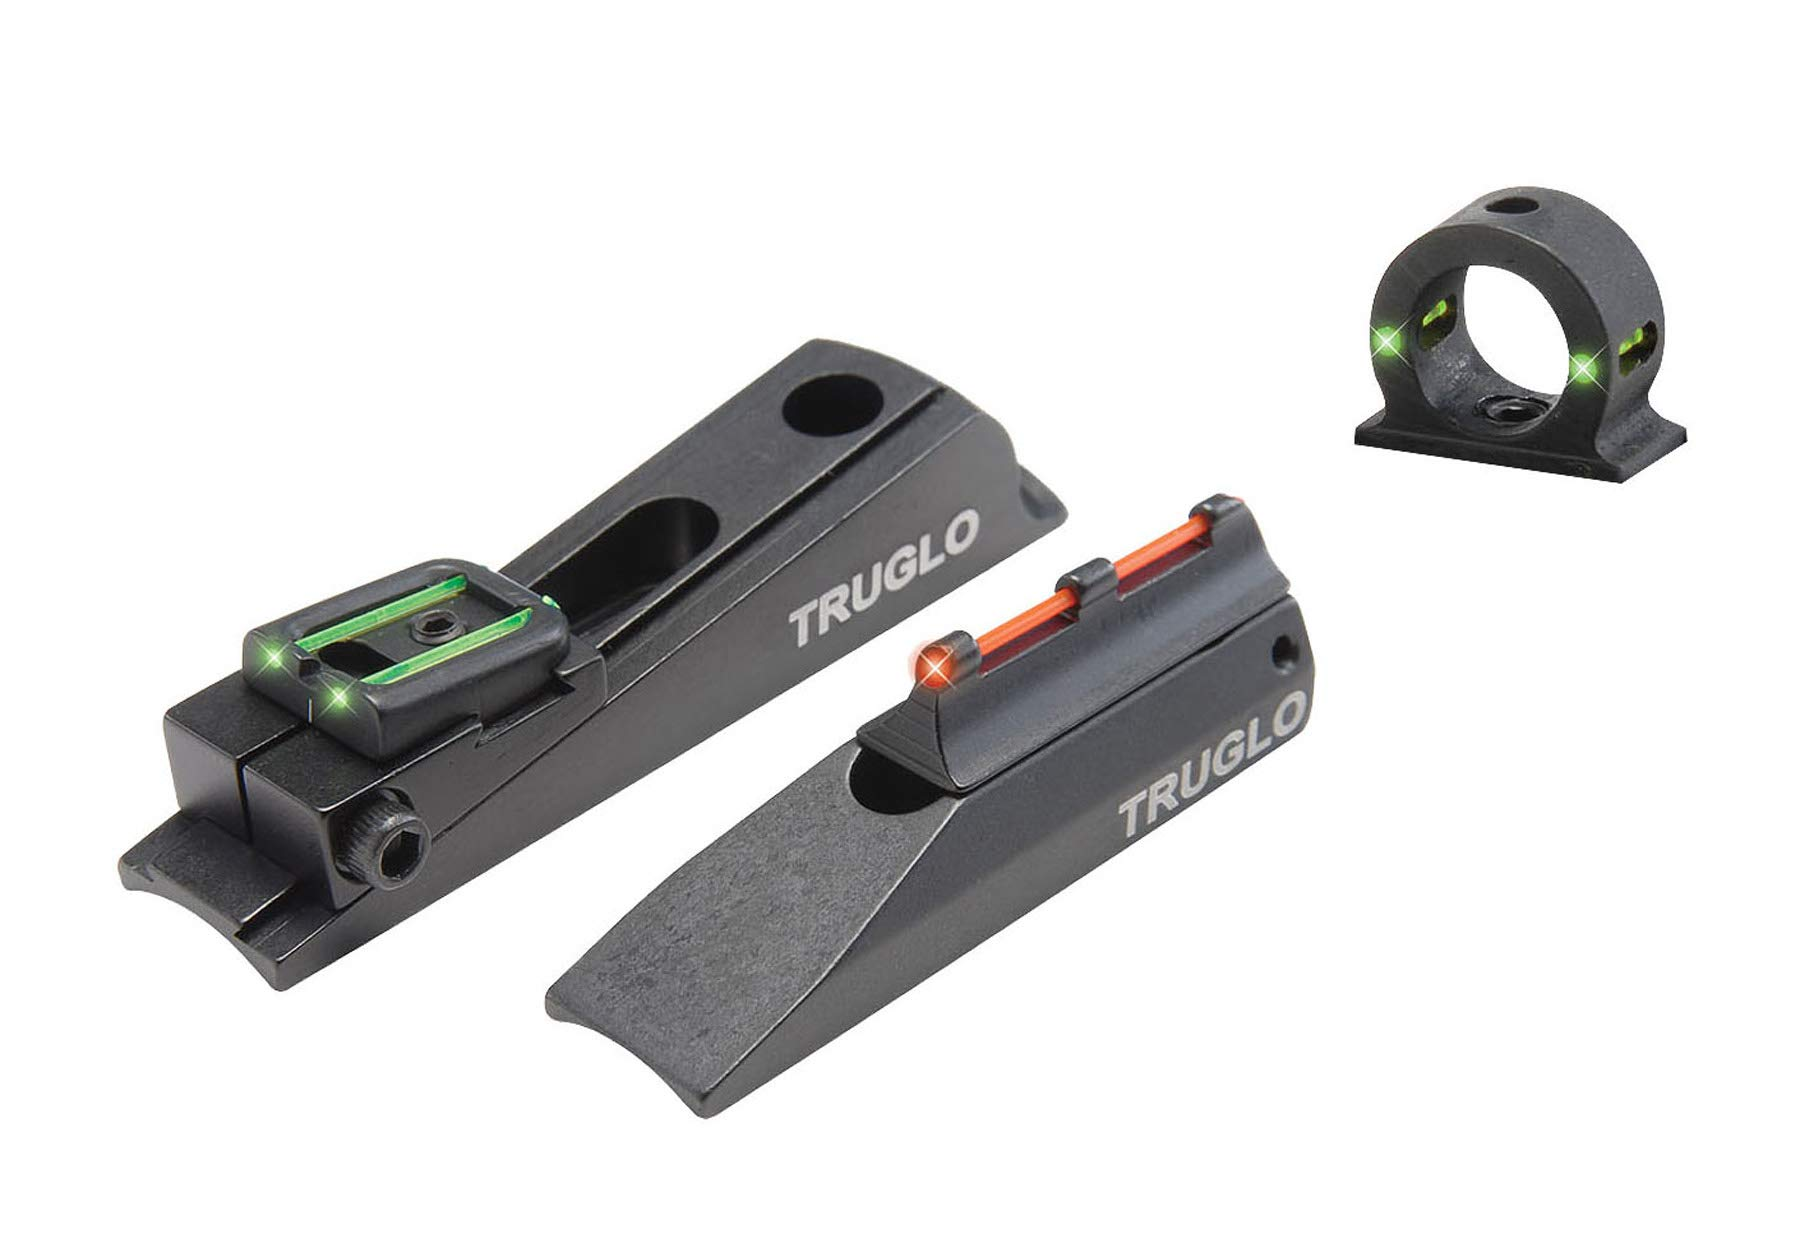 TRUGLO Muzzle-Brite Xtreme with Ghost Universal Sight, Red/Green